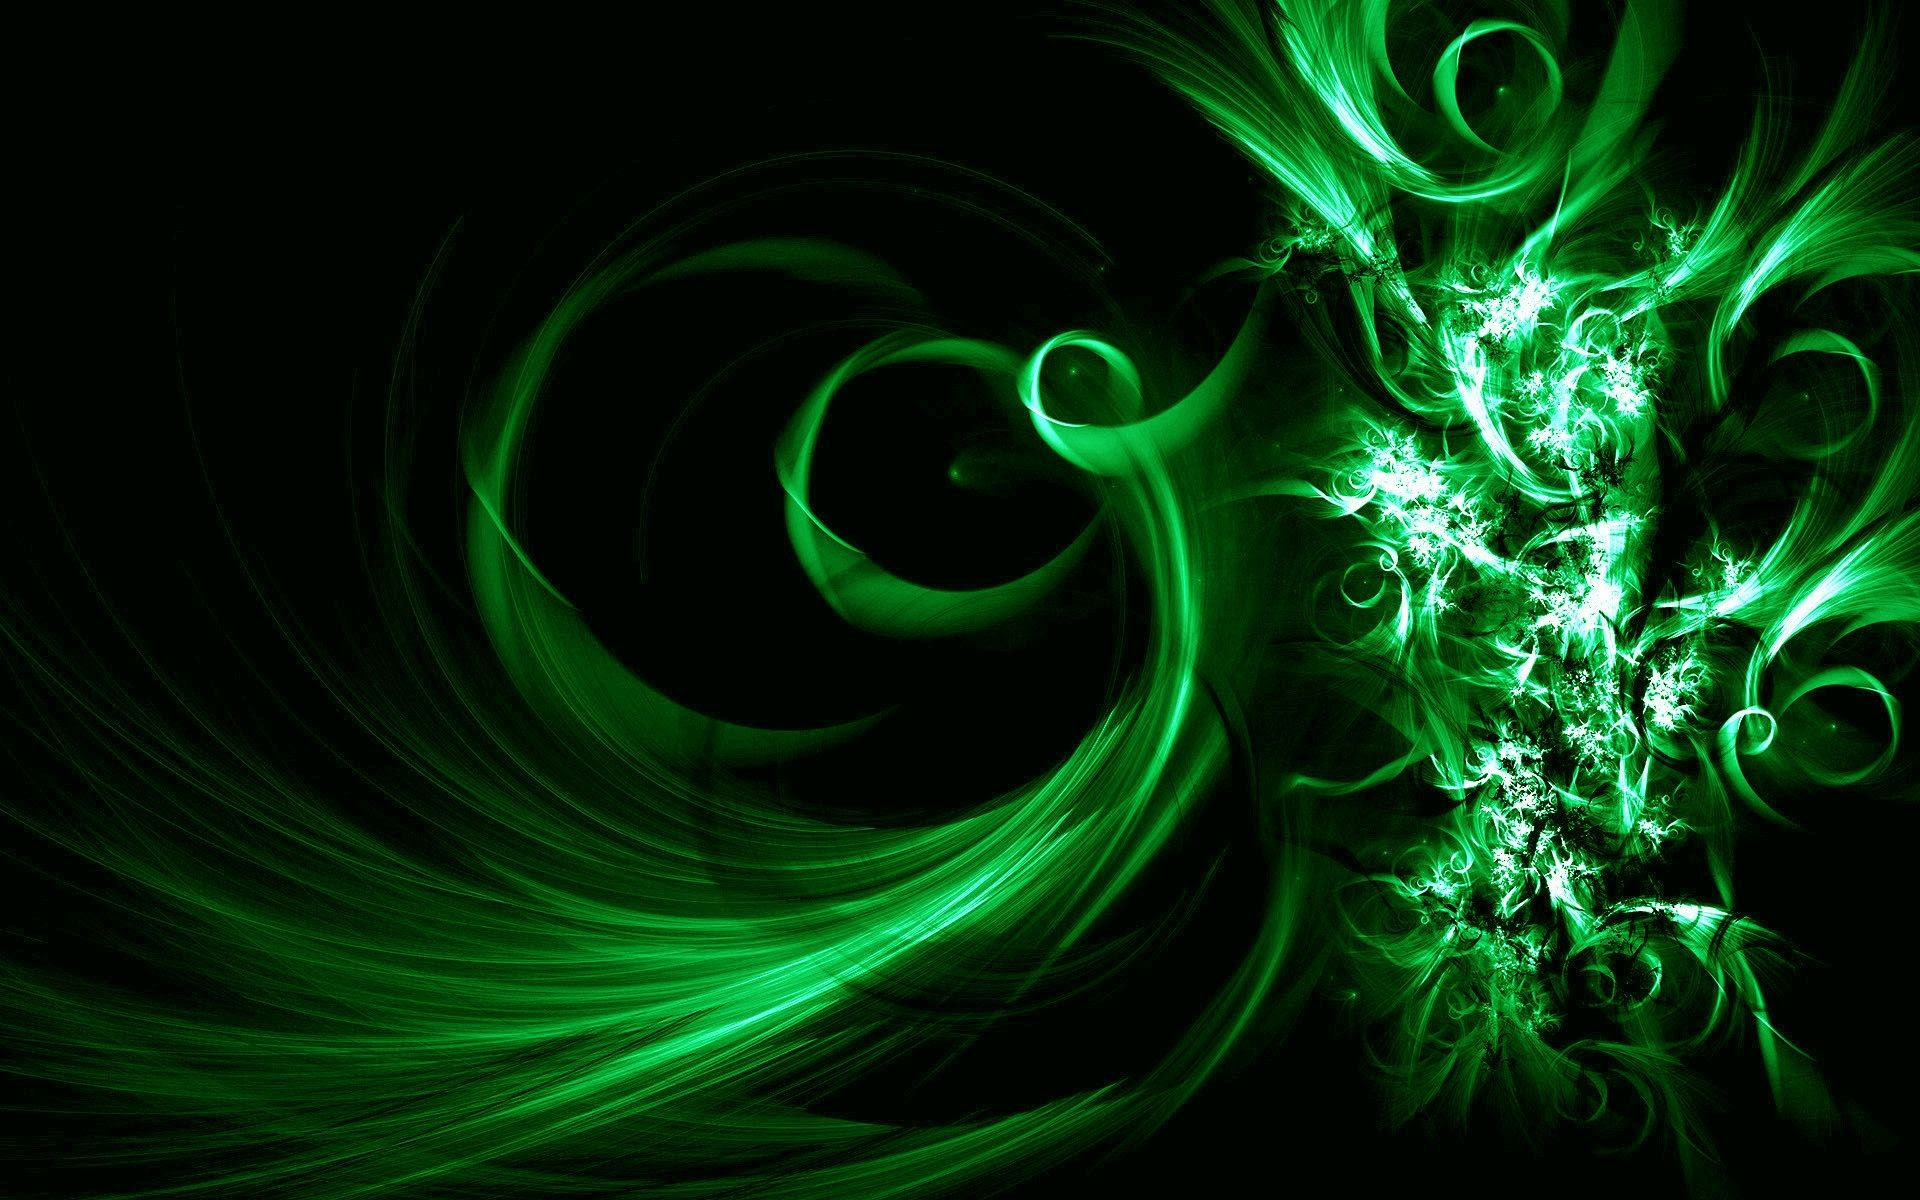 Black And Green Wallpaper 75 Images